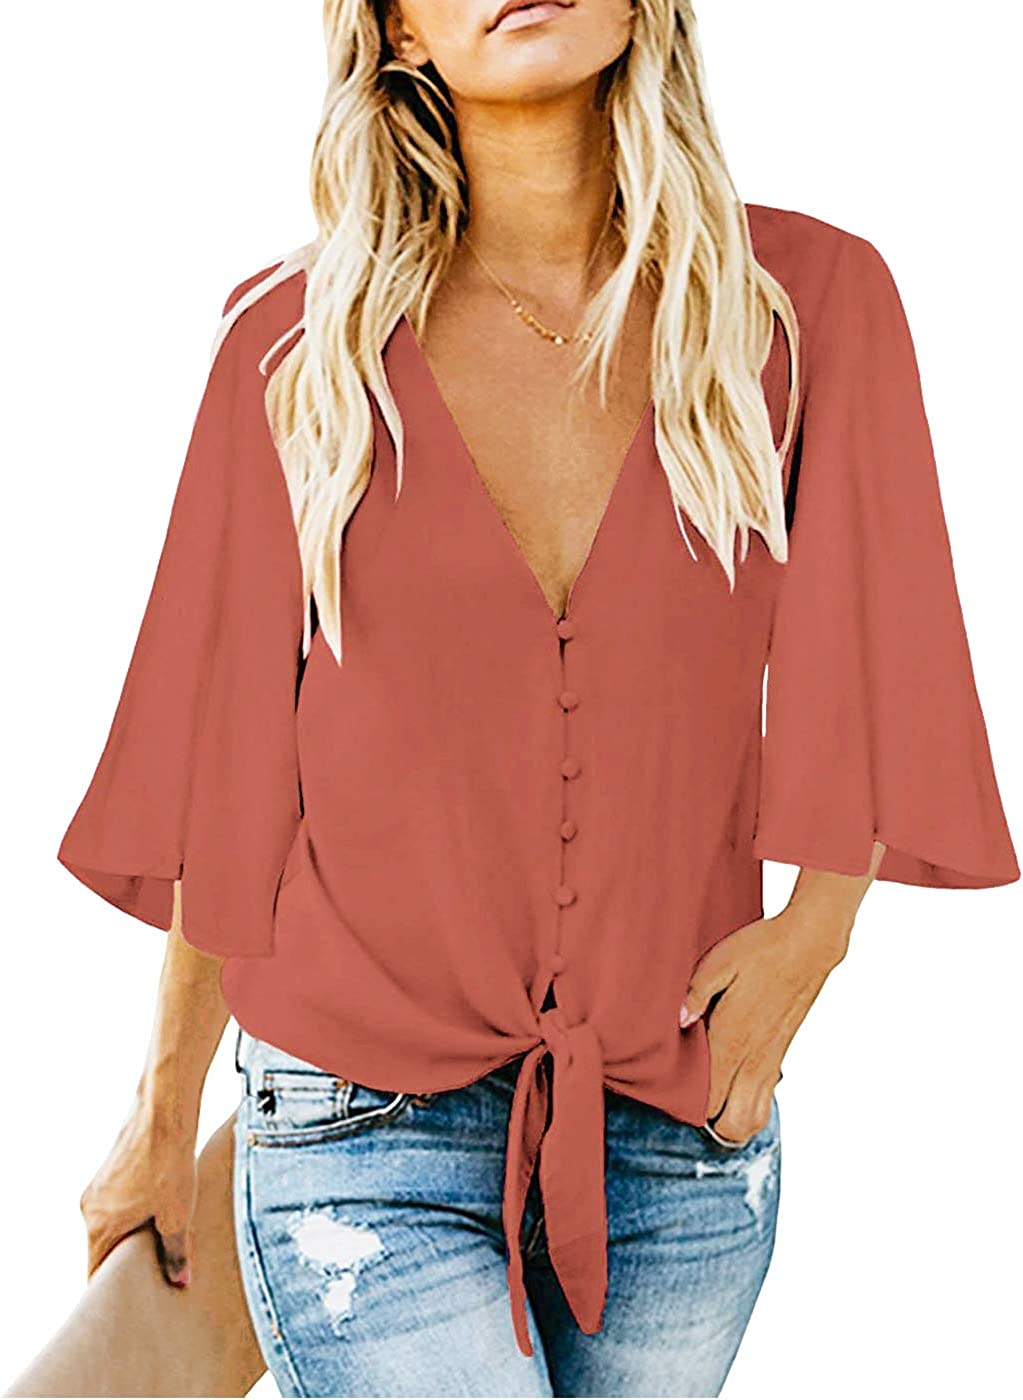 FANCYNA Women's V Neck 3/4 Bell Sleeve Tops Tie Knot Blouses Button Down Shirts for Women